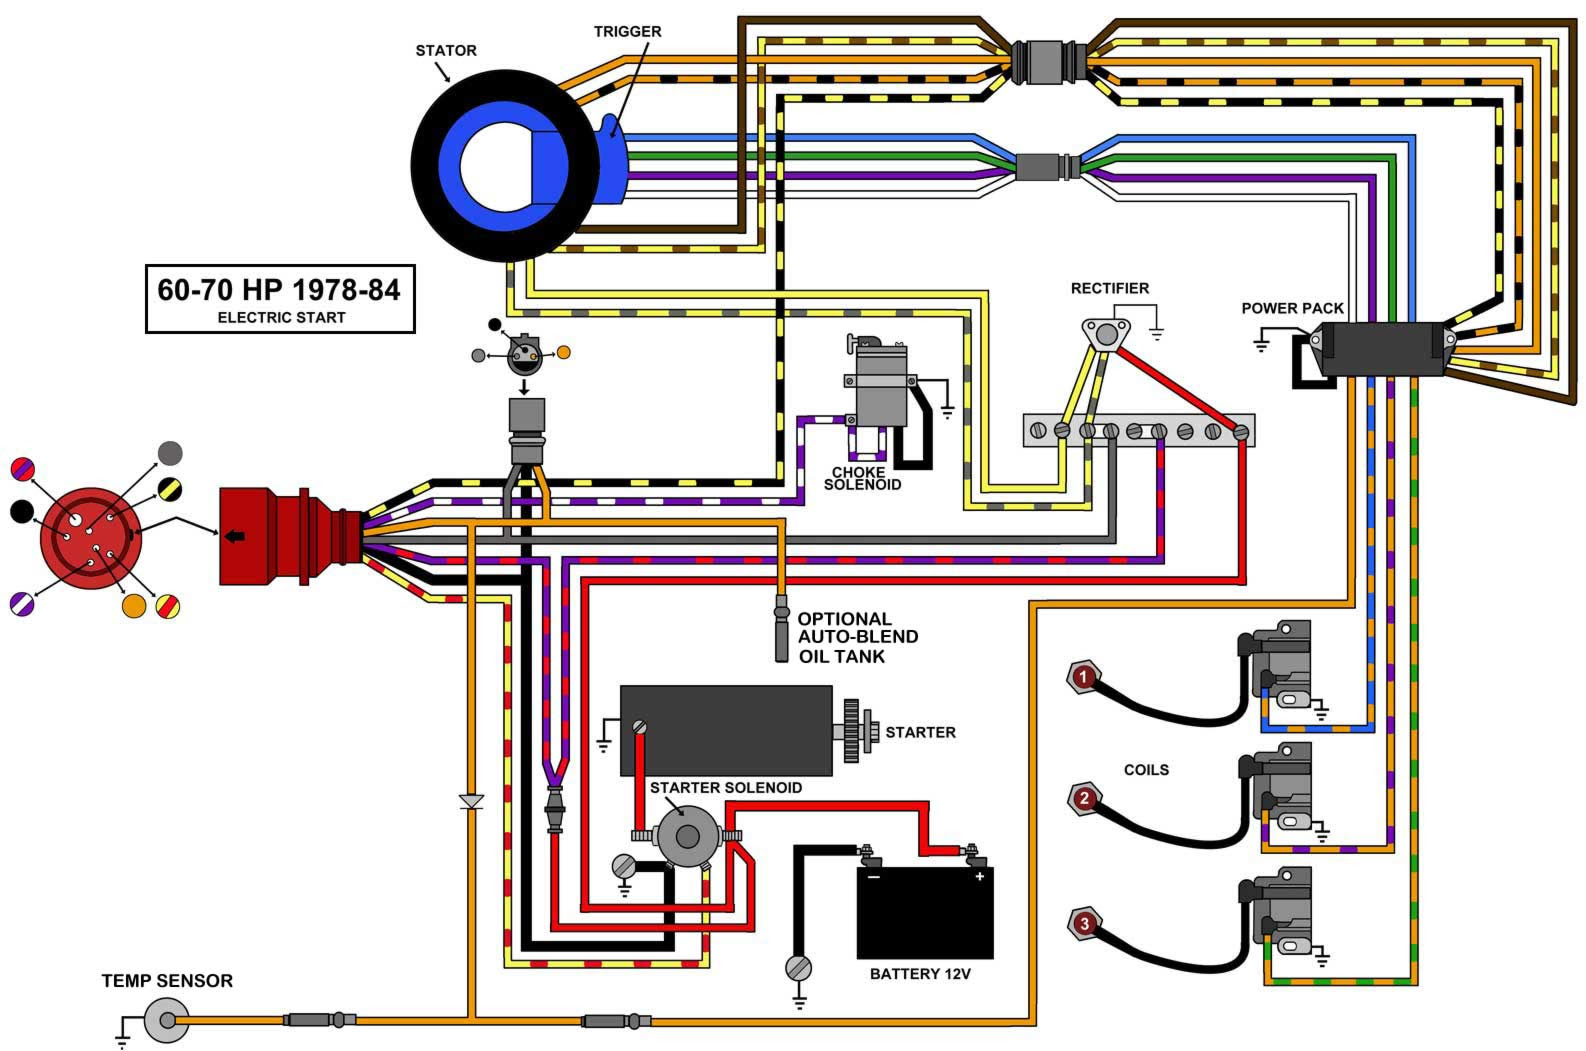 Diagram V6 Crossflow Omc Wiring Diagram Full Version Hd Quality Wiring Diagram Rackwiring Media90 It